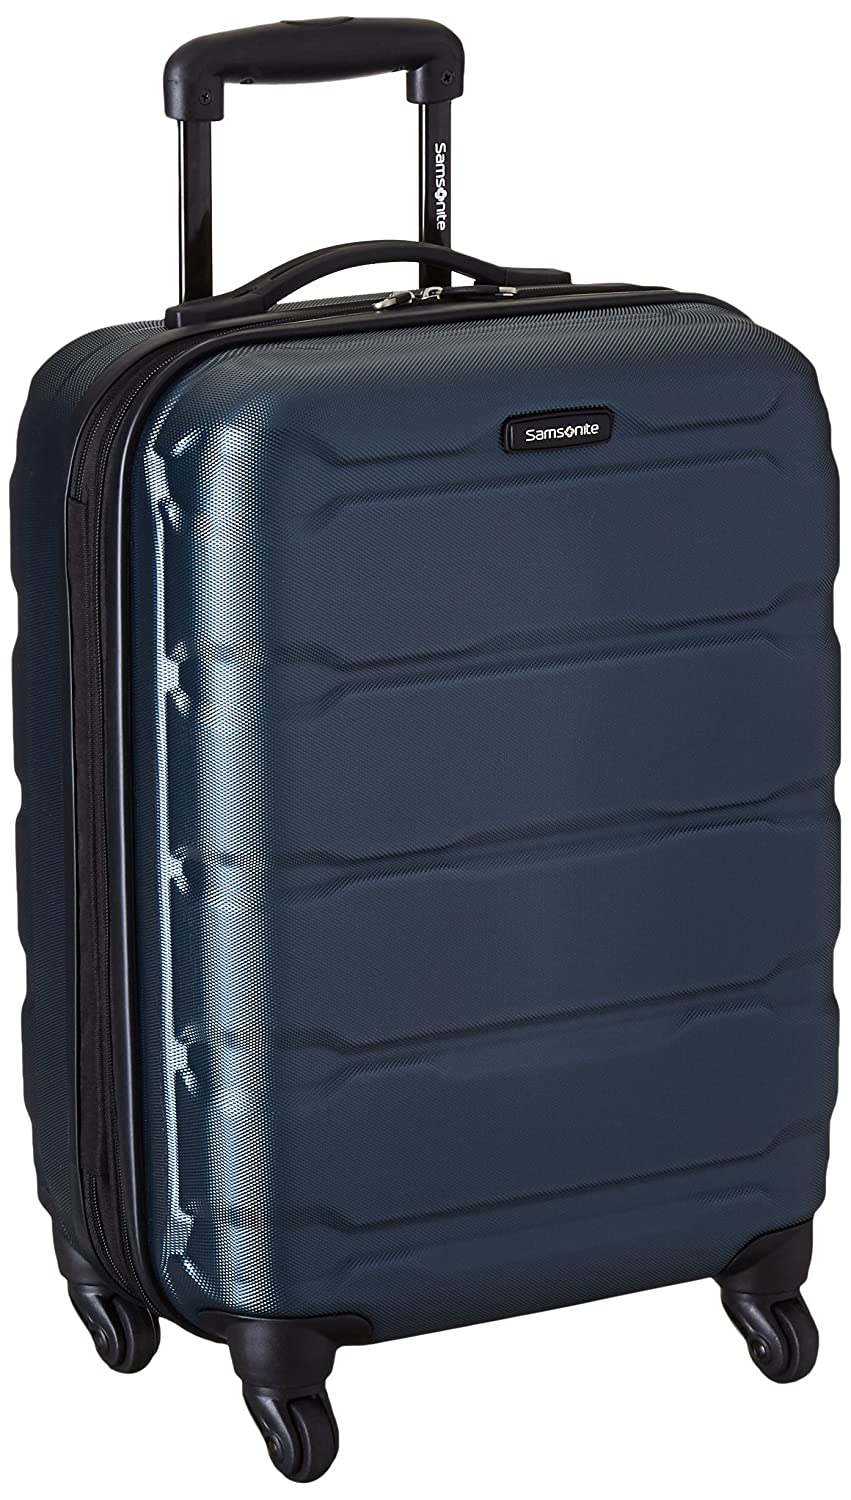 The Samsonite Omni PC Hardside 20-Inch One Size Spinner travel product recommended by Ollie Smith on Lifney.